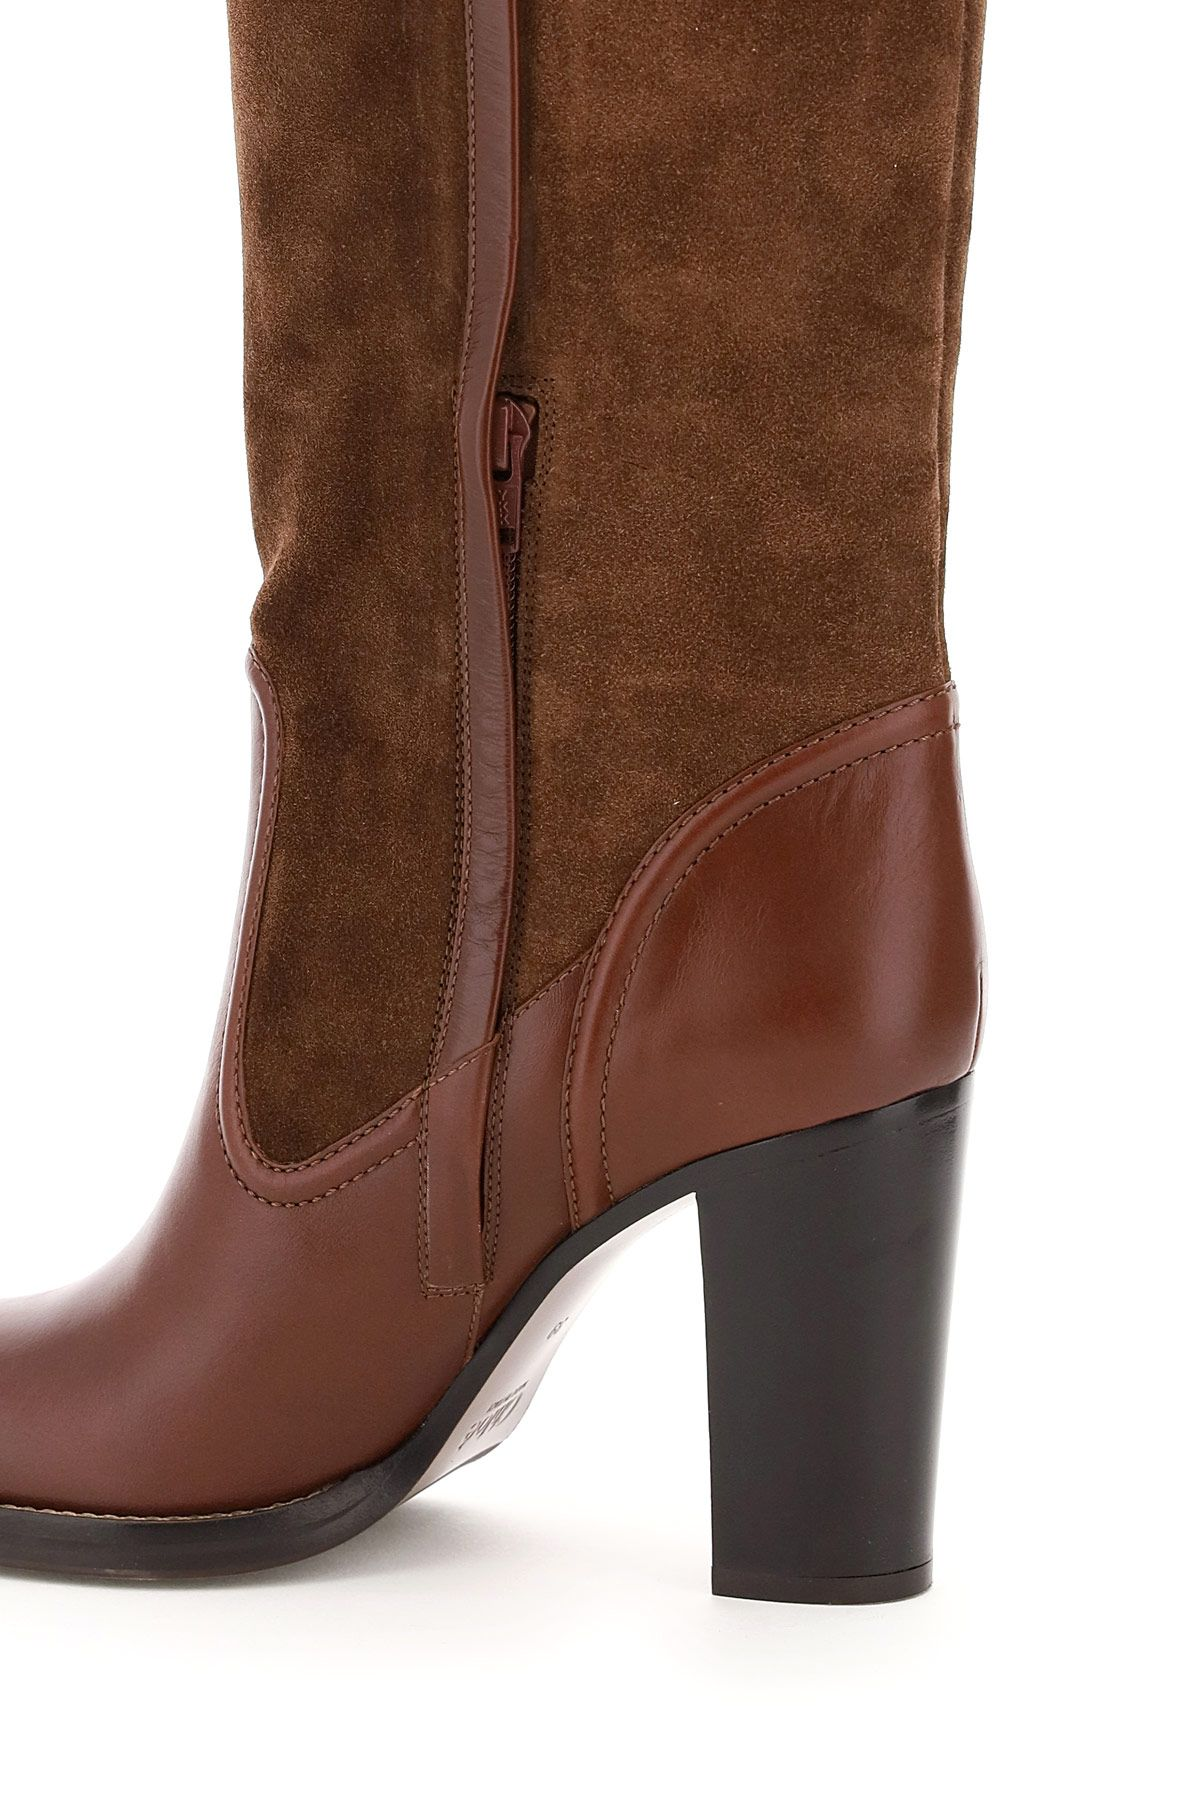 chloe' shoes women emma leather and suede boots